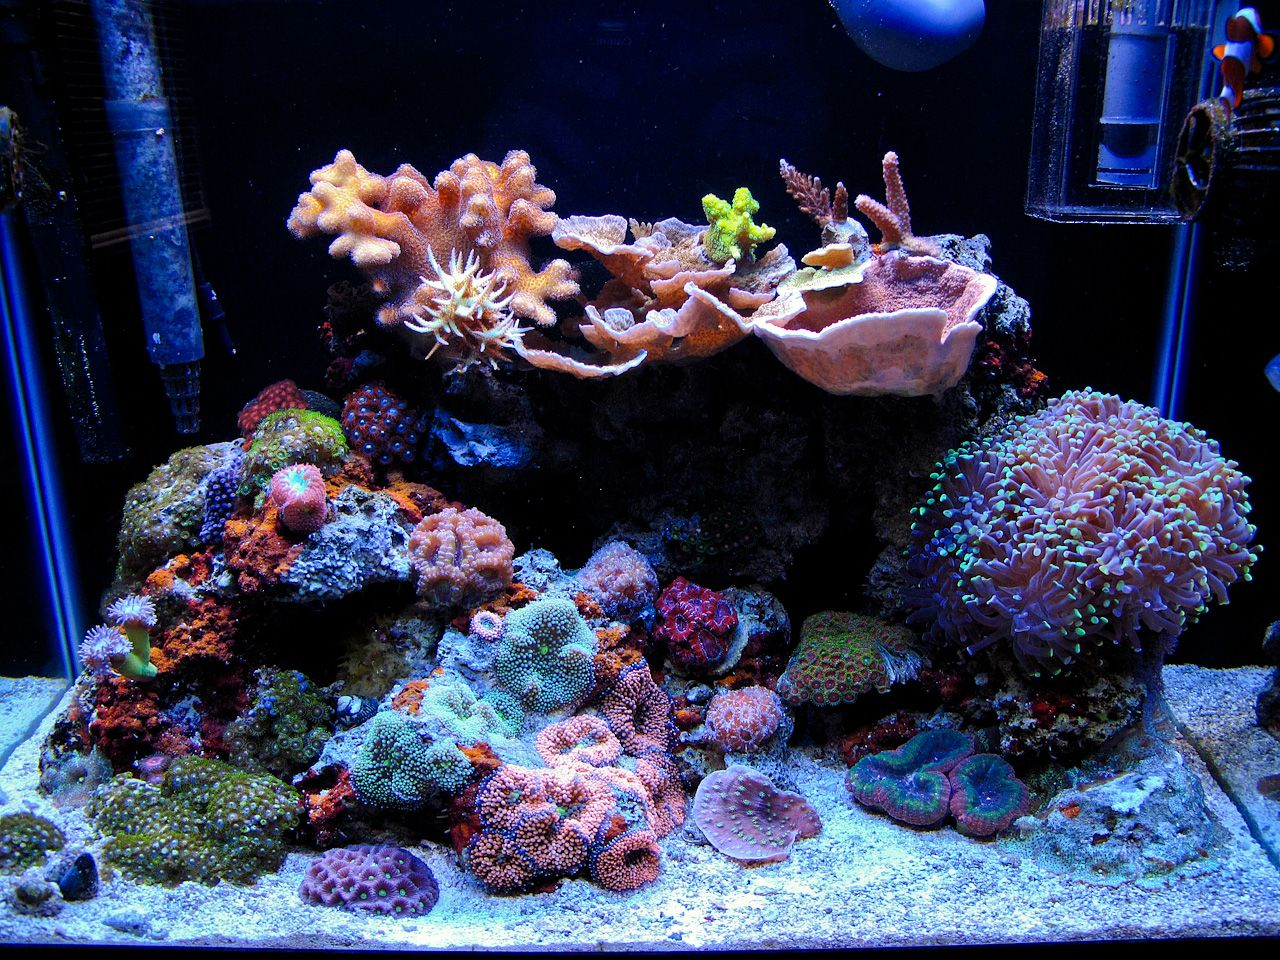 His 20 Gallon Nano Reef Is Diverse With Life Featuring A Wide Array Of Boldly Colored Coral Descriptio Reef Tank Aquascaping Saltwater Aquarium Reef Aquarium